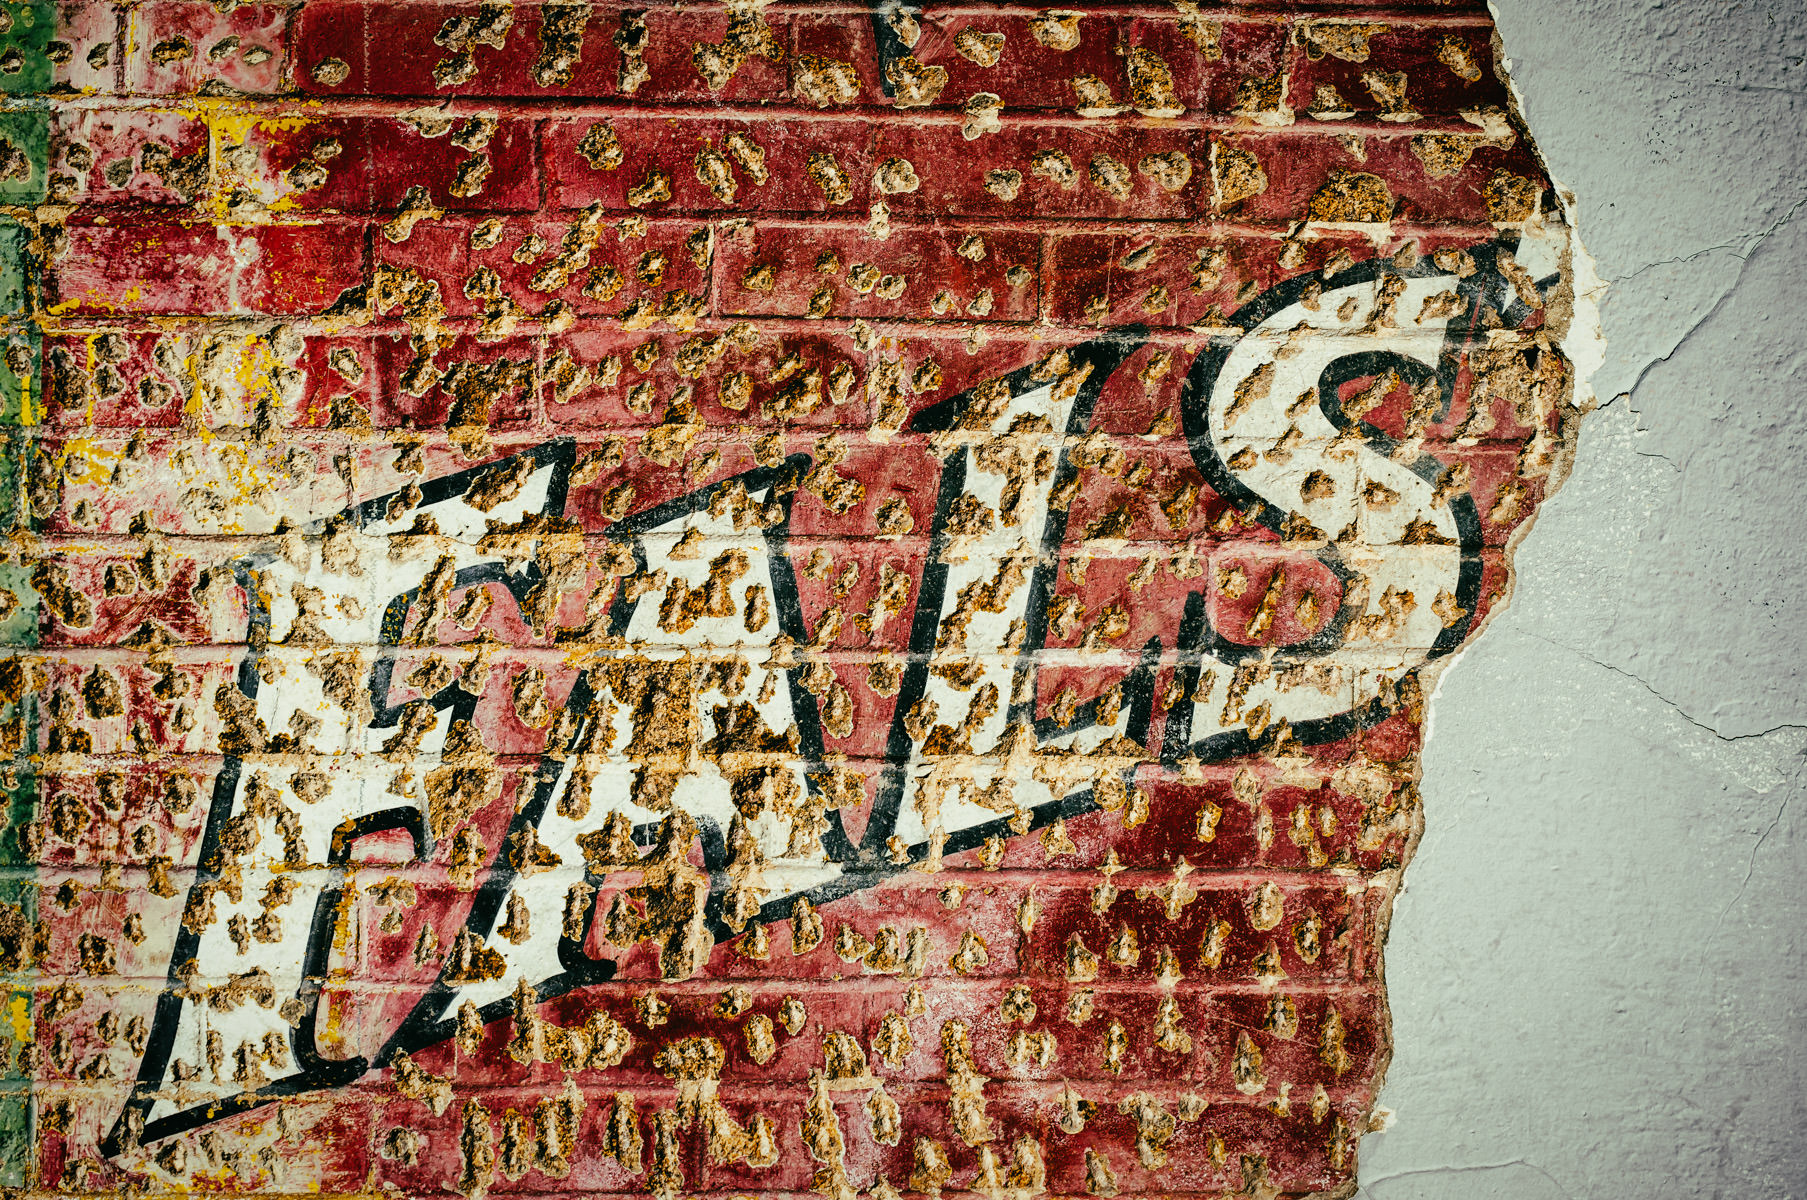 A plastered-over Falstaff beer advertisement on the side of a building in Fort Worth's Stockyards District.